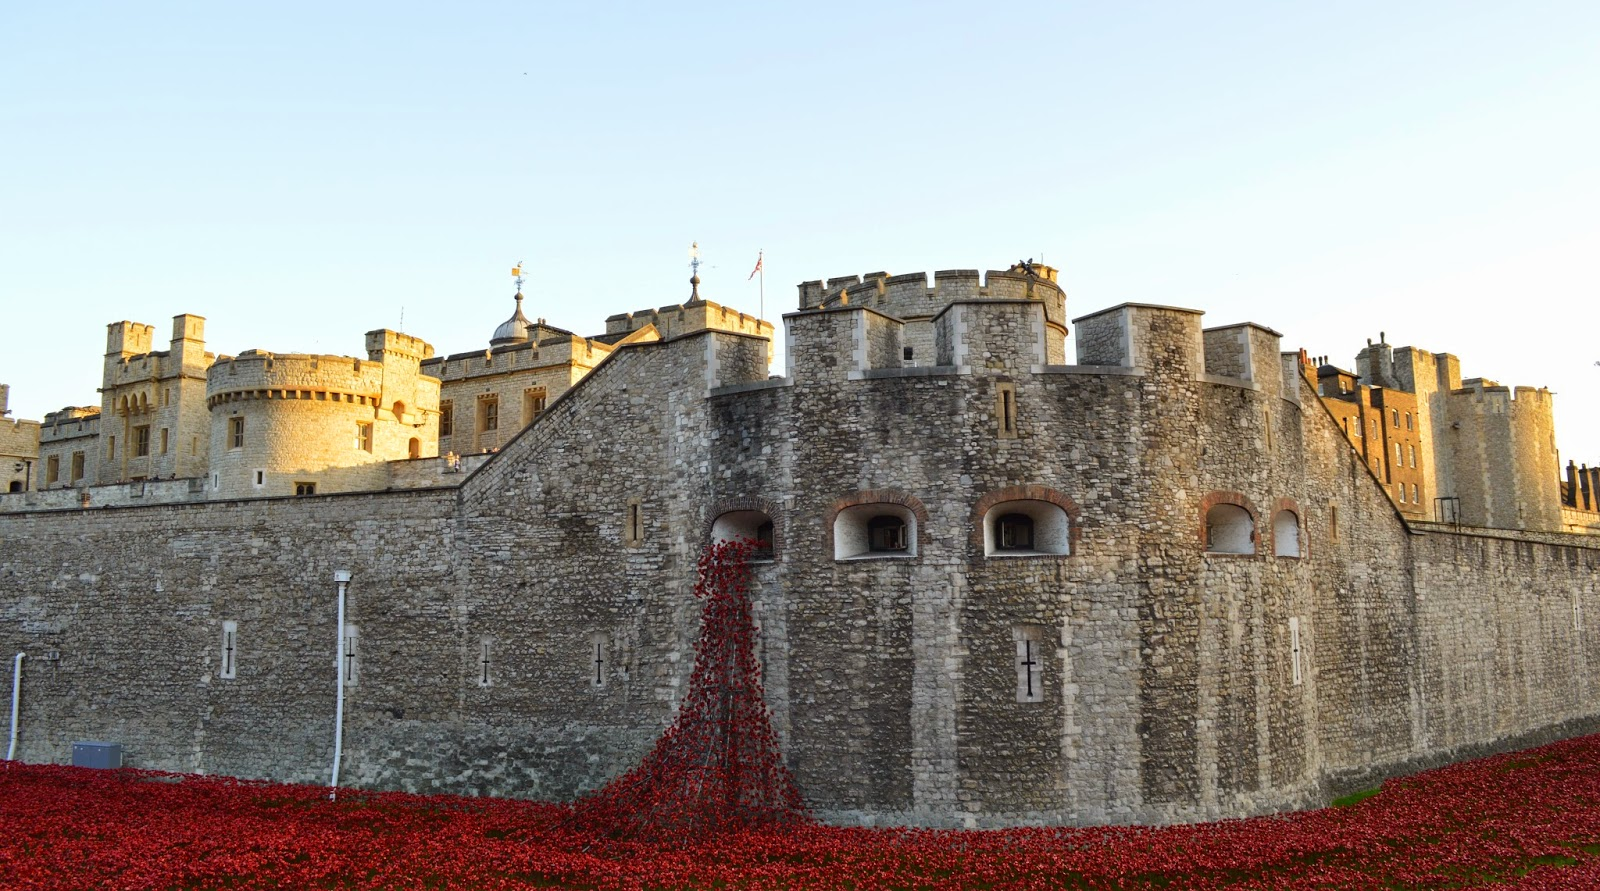 Lest we forget, poppies, Tower of London, First World War, tribute, commemorative, art, instillation, weeping window, UK, visit, Blood Swept Land and Sea of Red, 888236, photo, photography, armistice, 1914, WW1